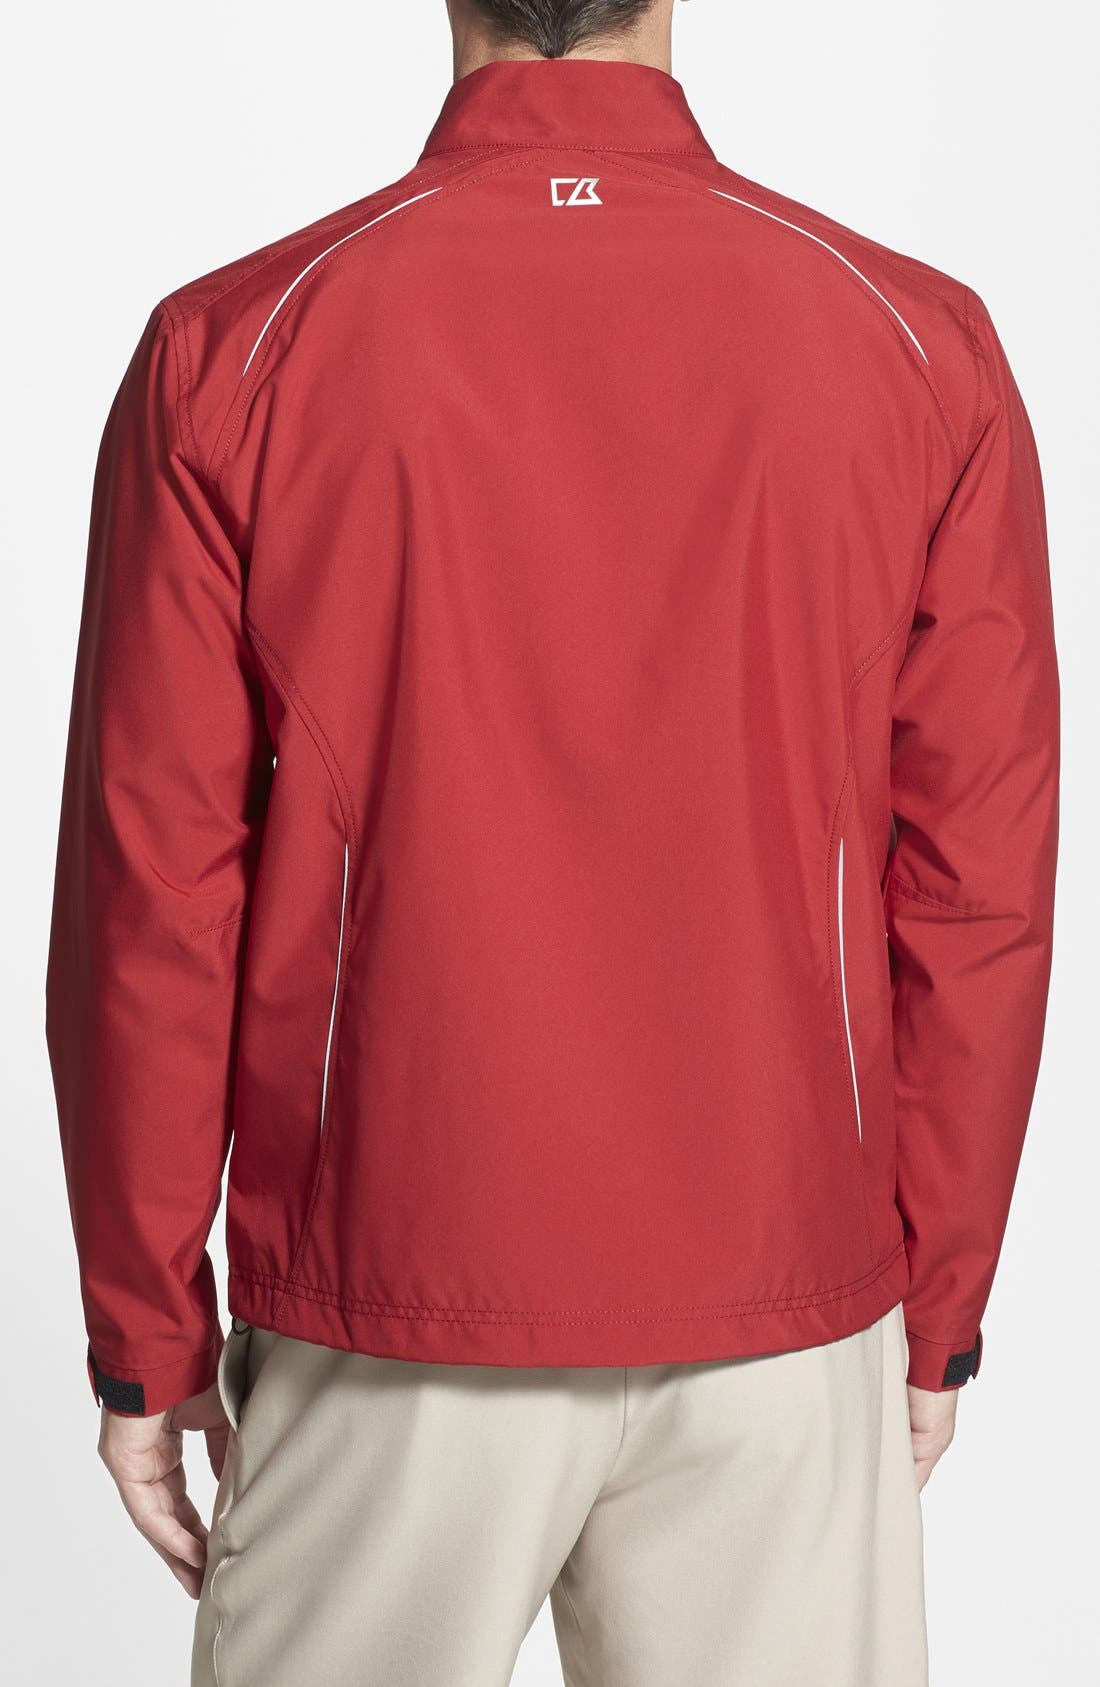 Kansas City Chiefs - Beacon WeatherTec Wind & Water Resistant Jacket,                             Alternate thumbnail 2, color,                             Cardinal Red